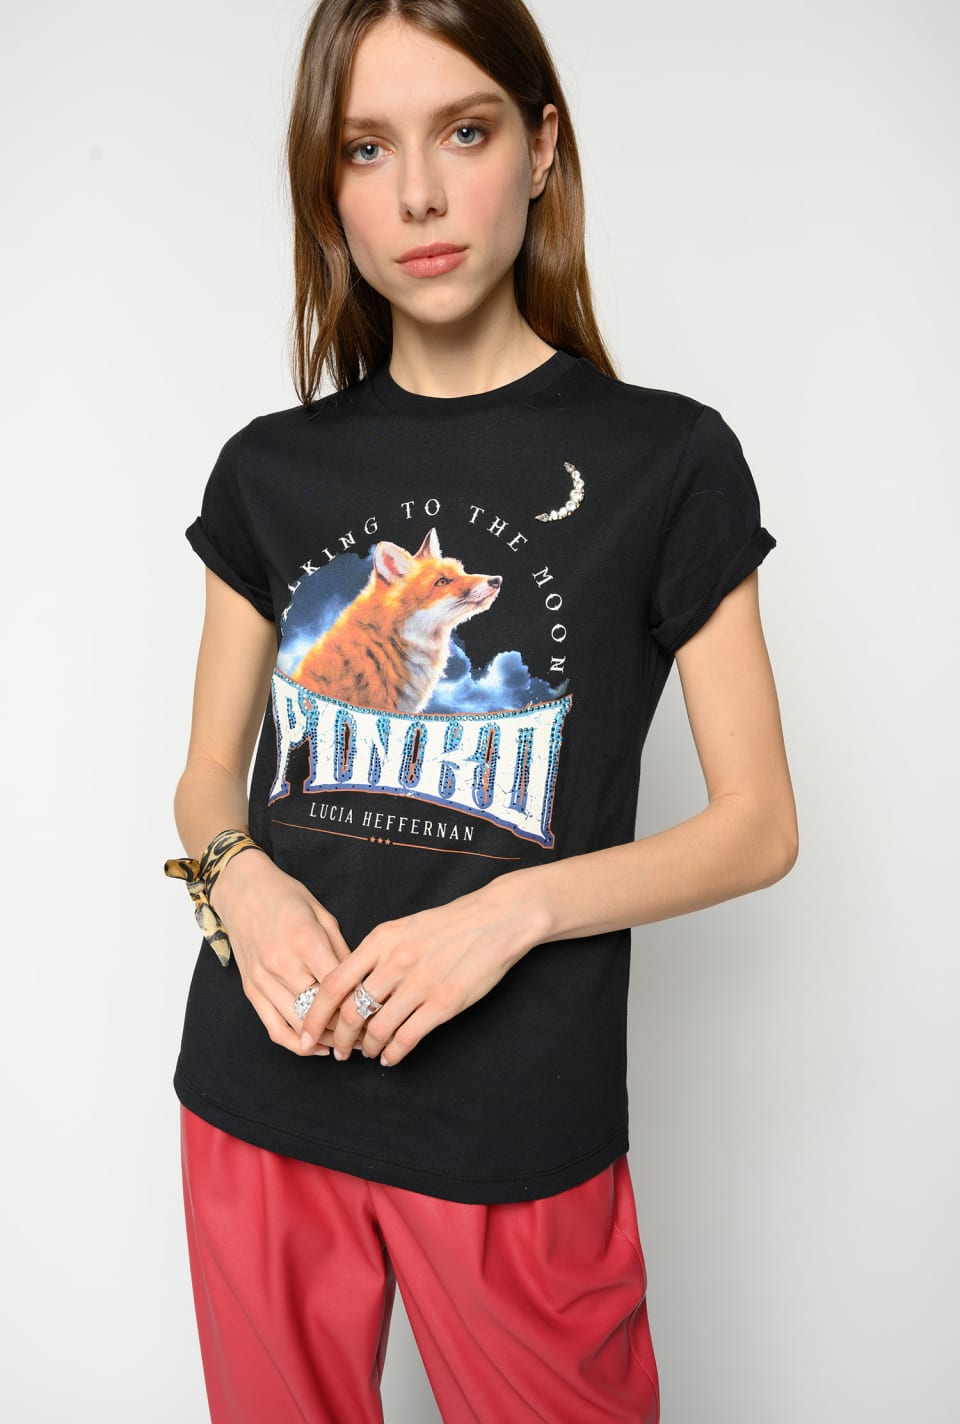 T-shirt « Talking To The Moon » - Pinko